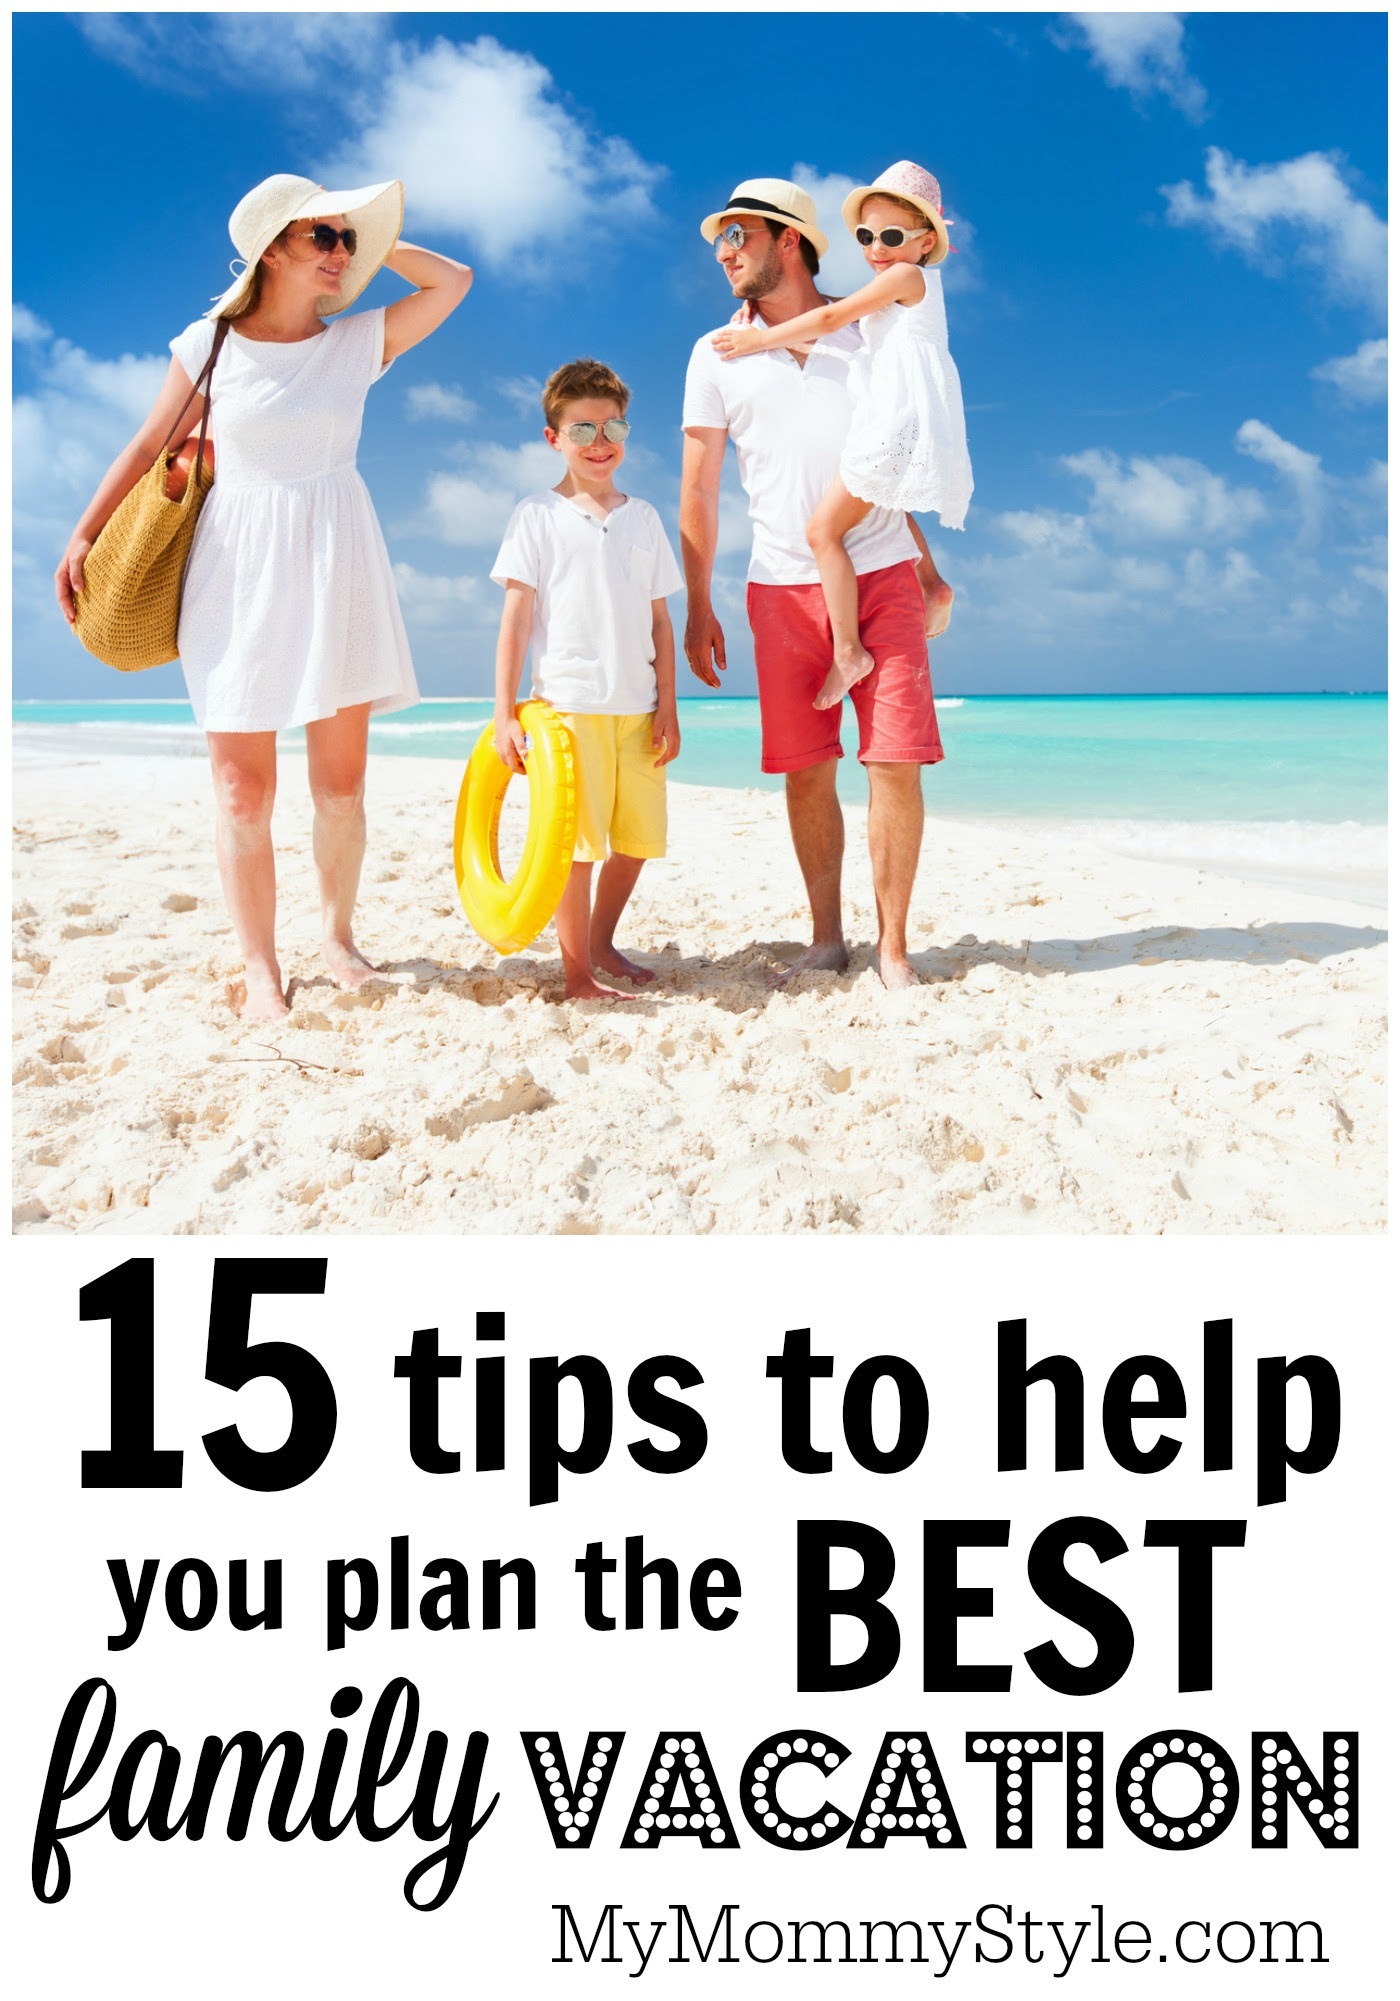 15 tips to help make your family vacation the best one